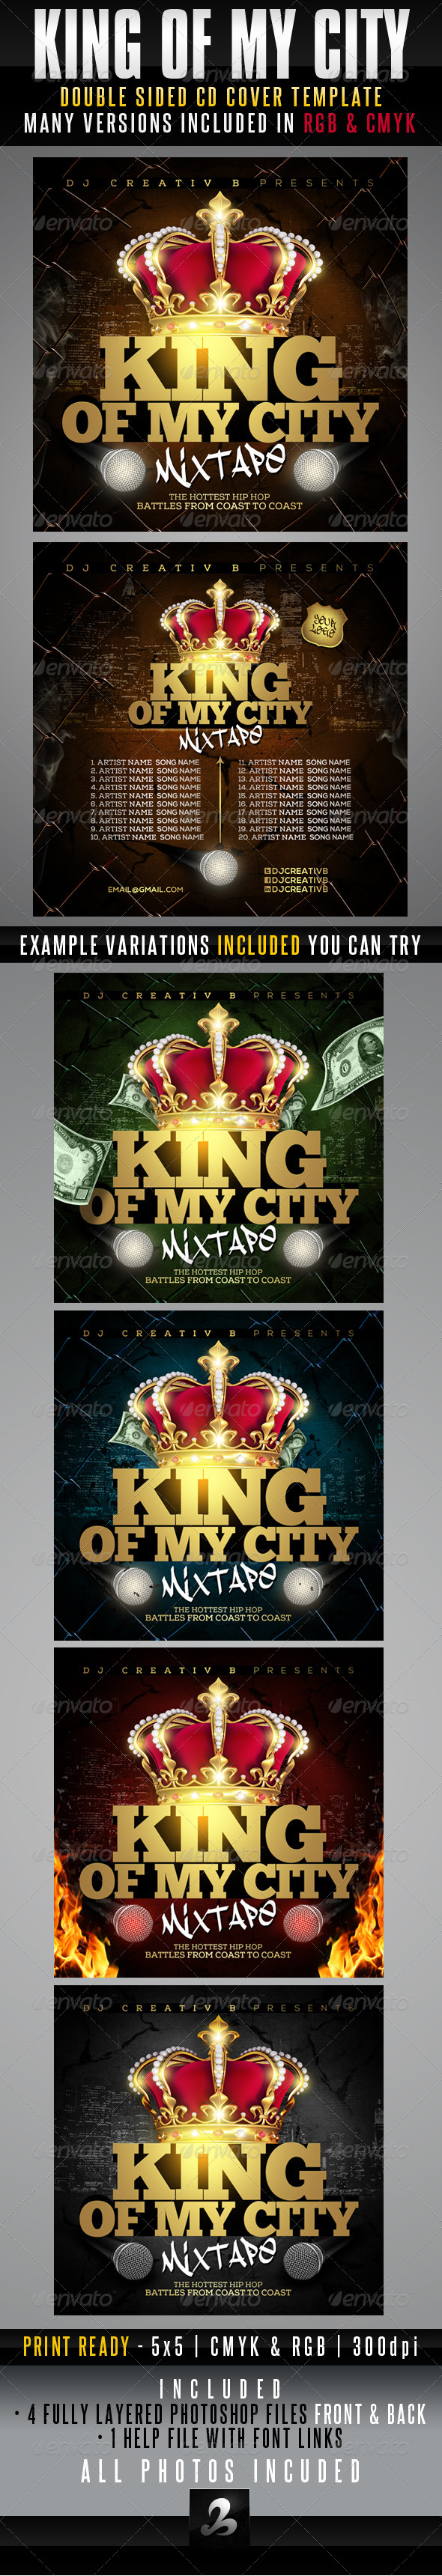 King Of My City Mixtape CD Cover Template - CD & DVD Artwork Print Templates